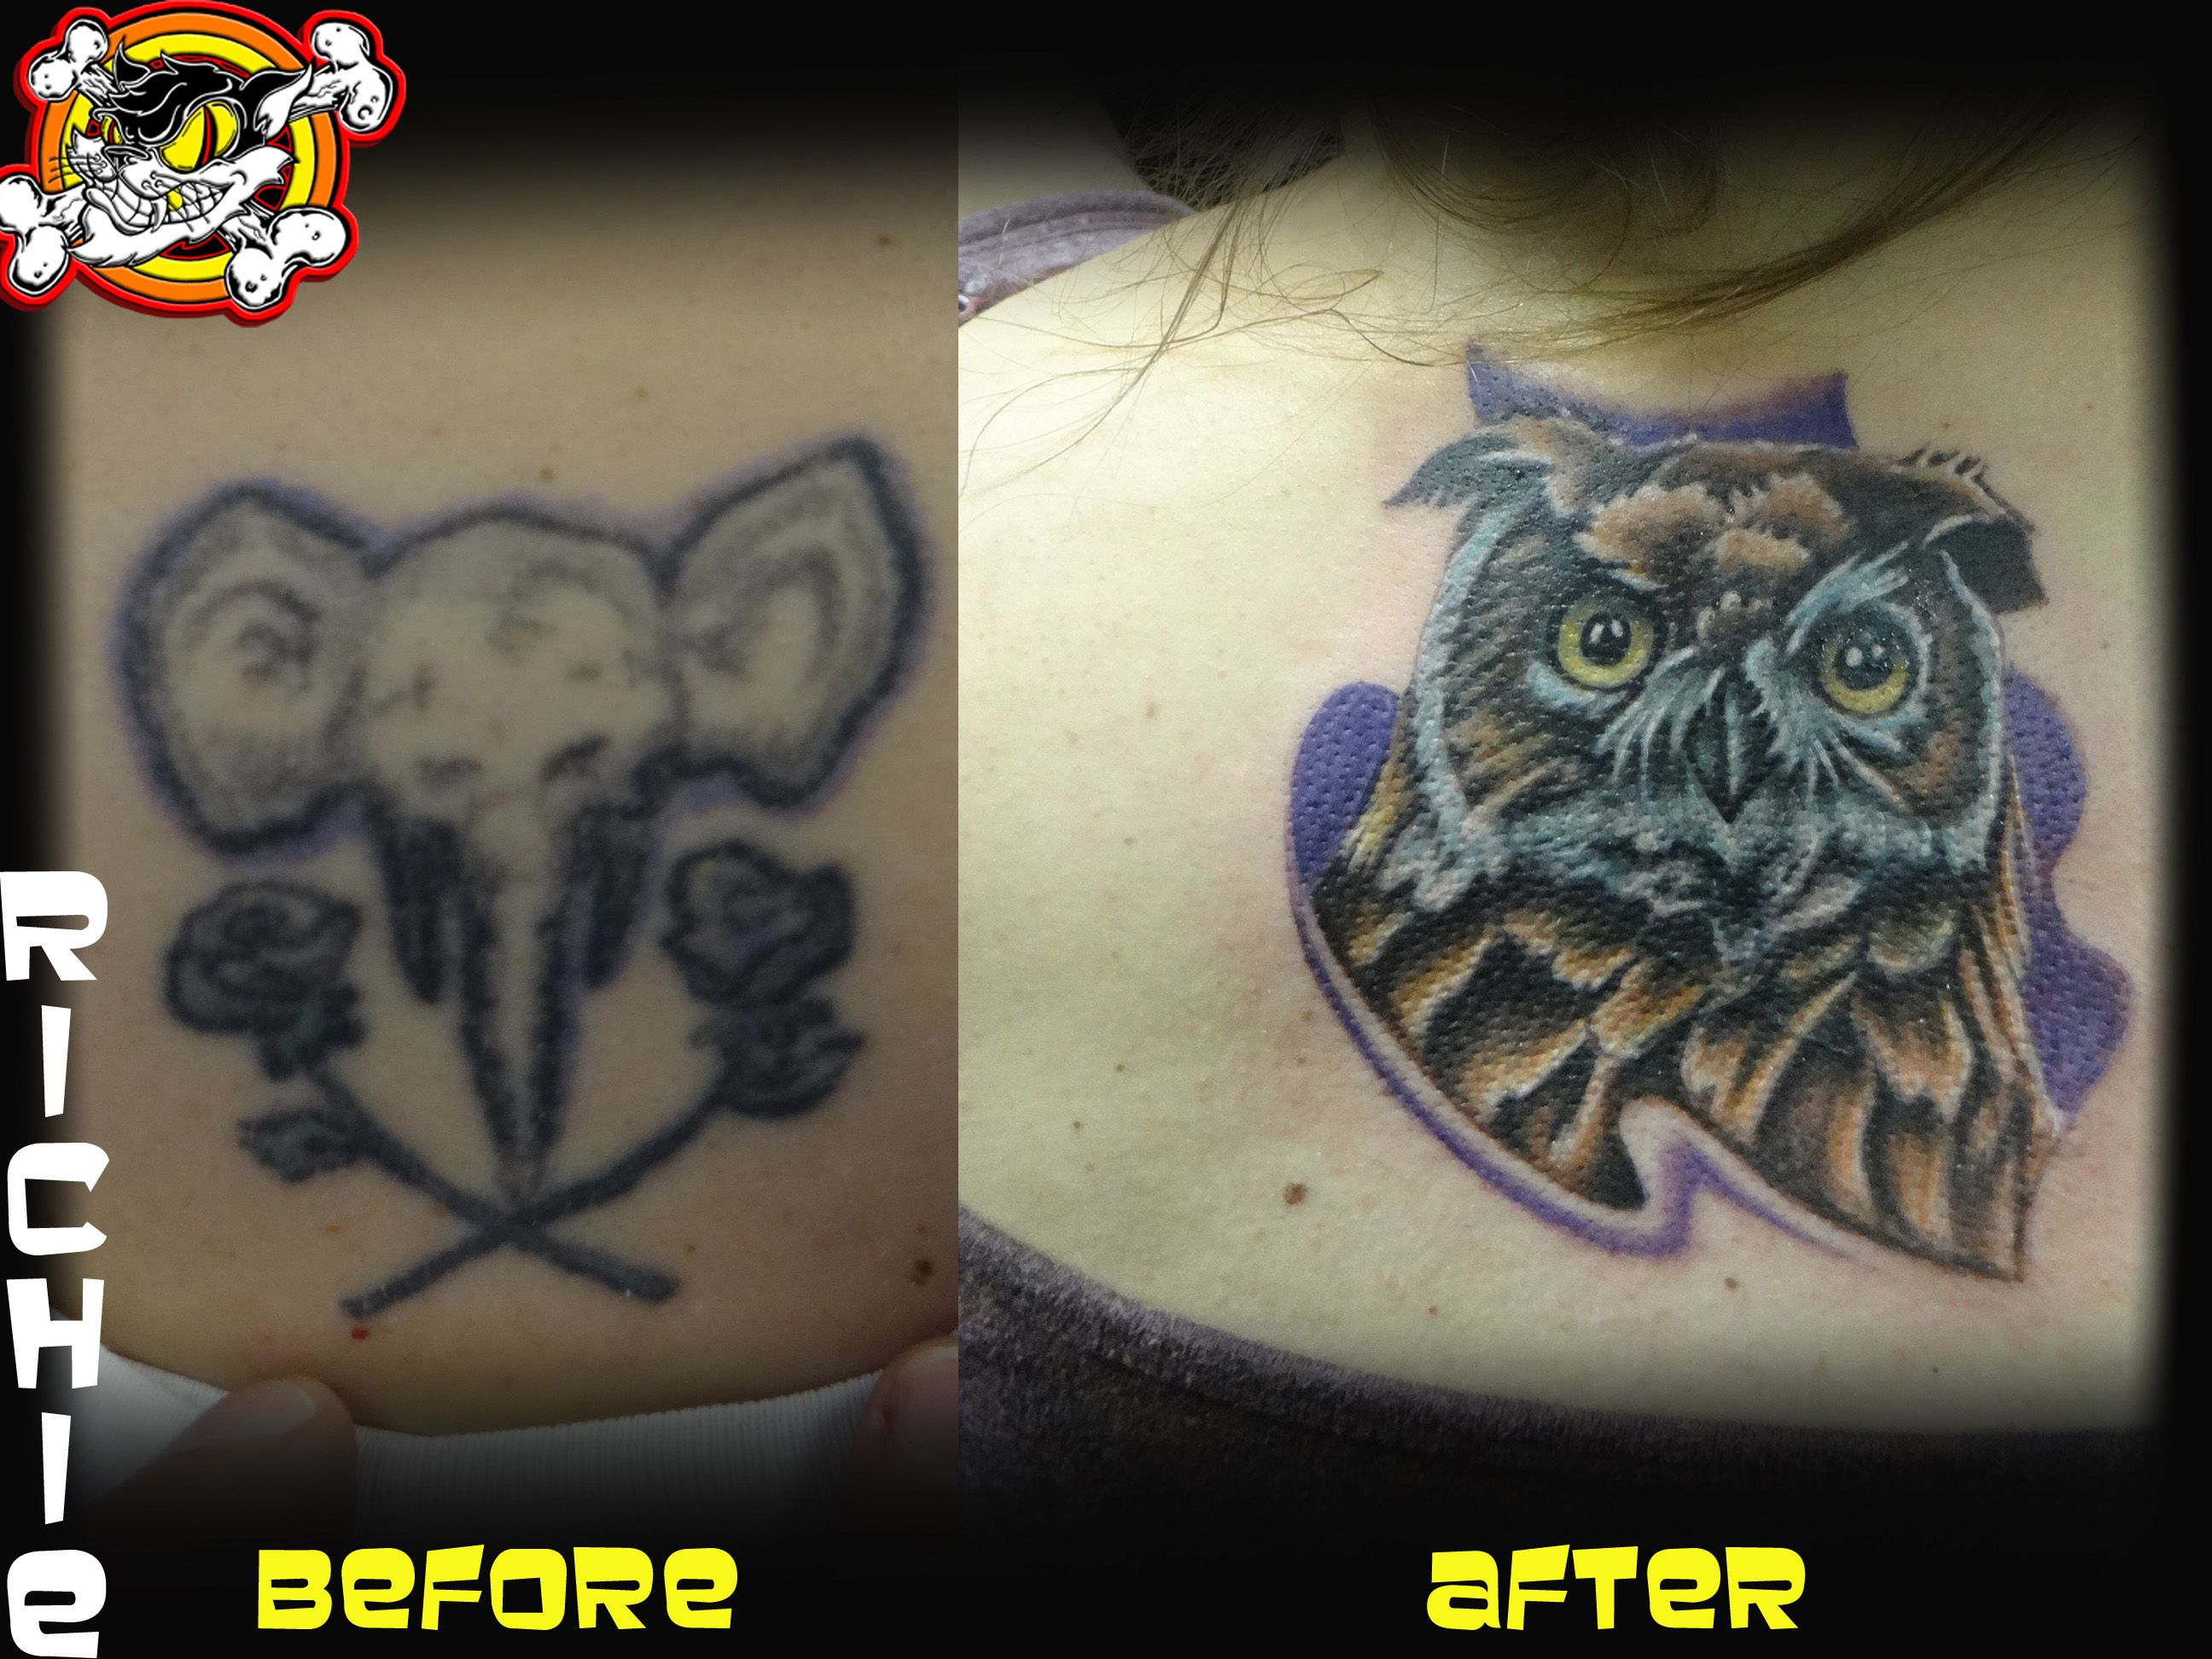 Richie kills it again with another great cover-up!